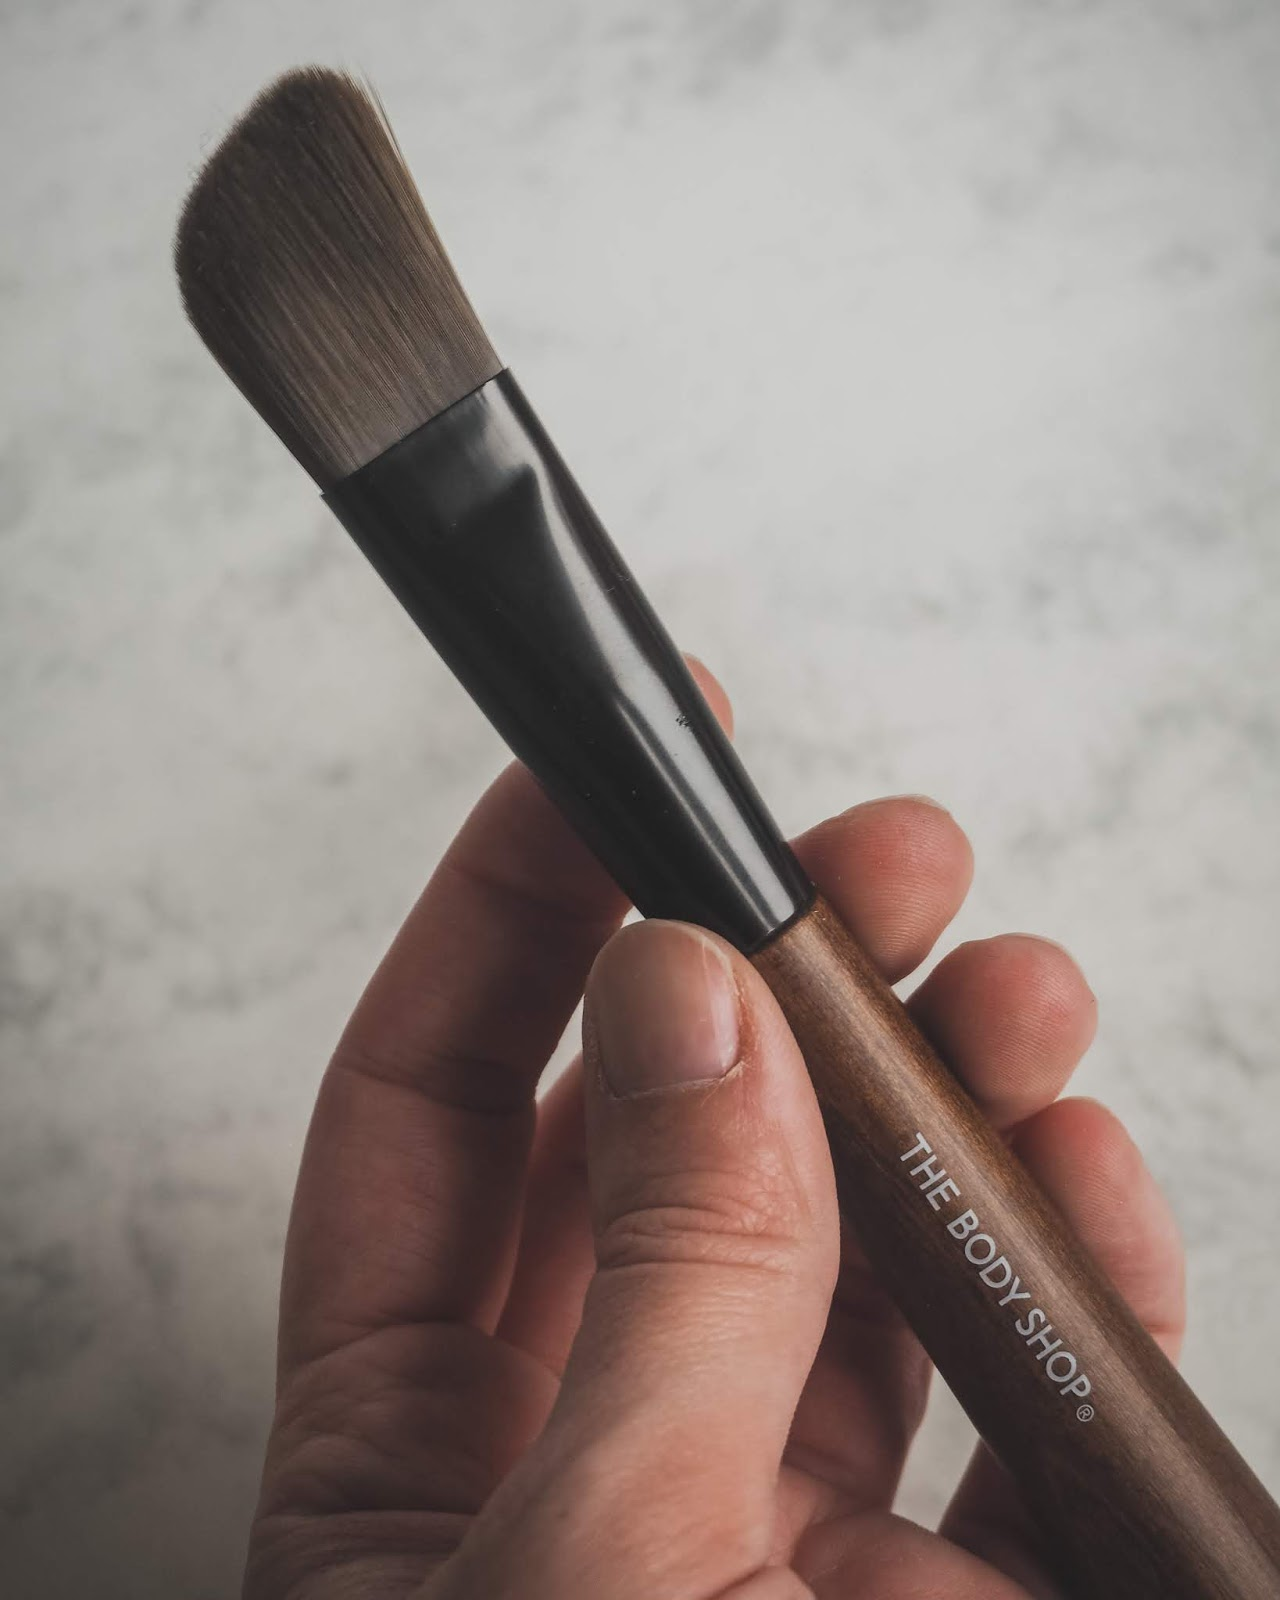 The Body Shop Facial Mask Brush